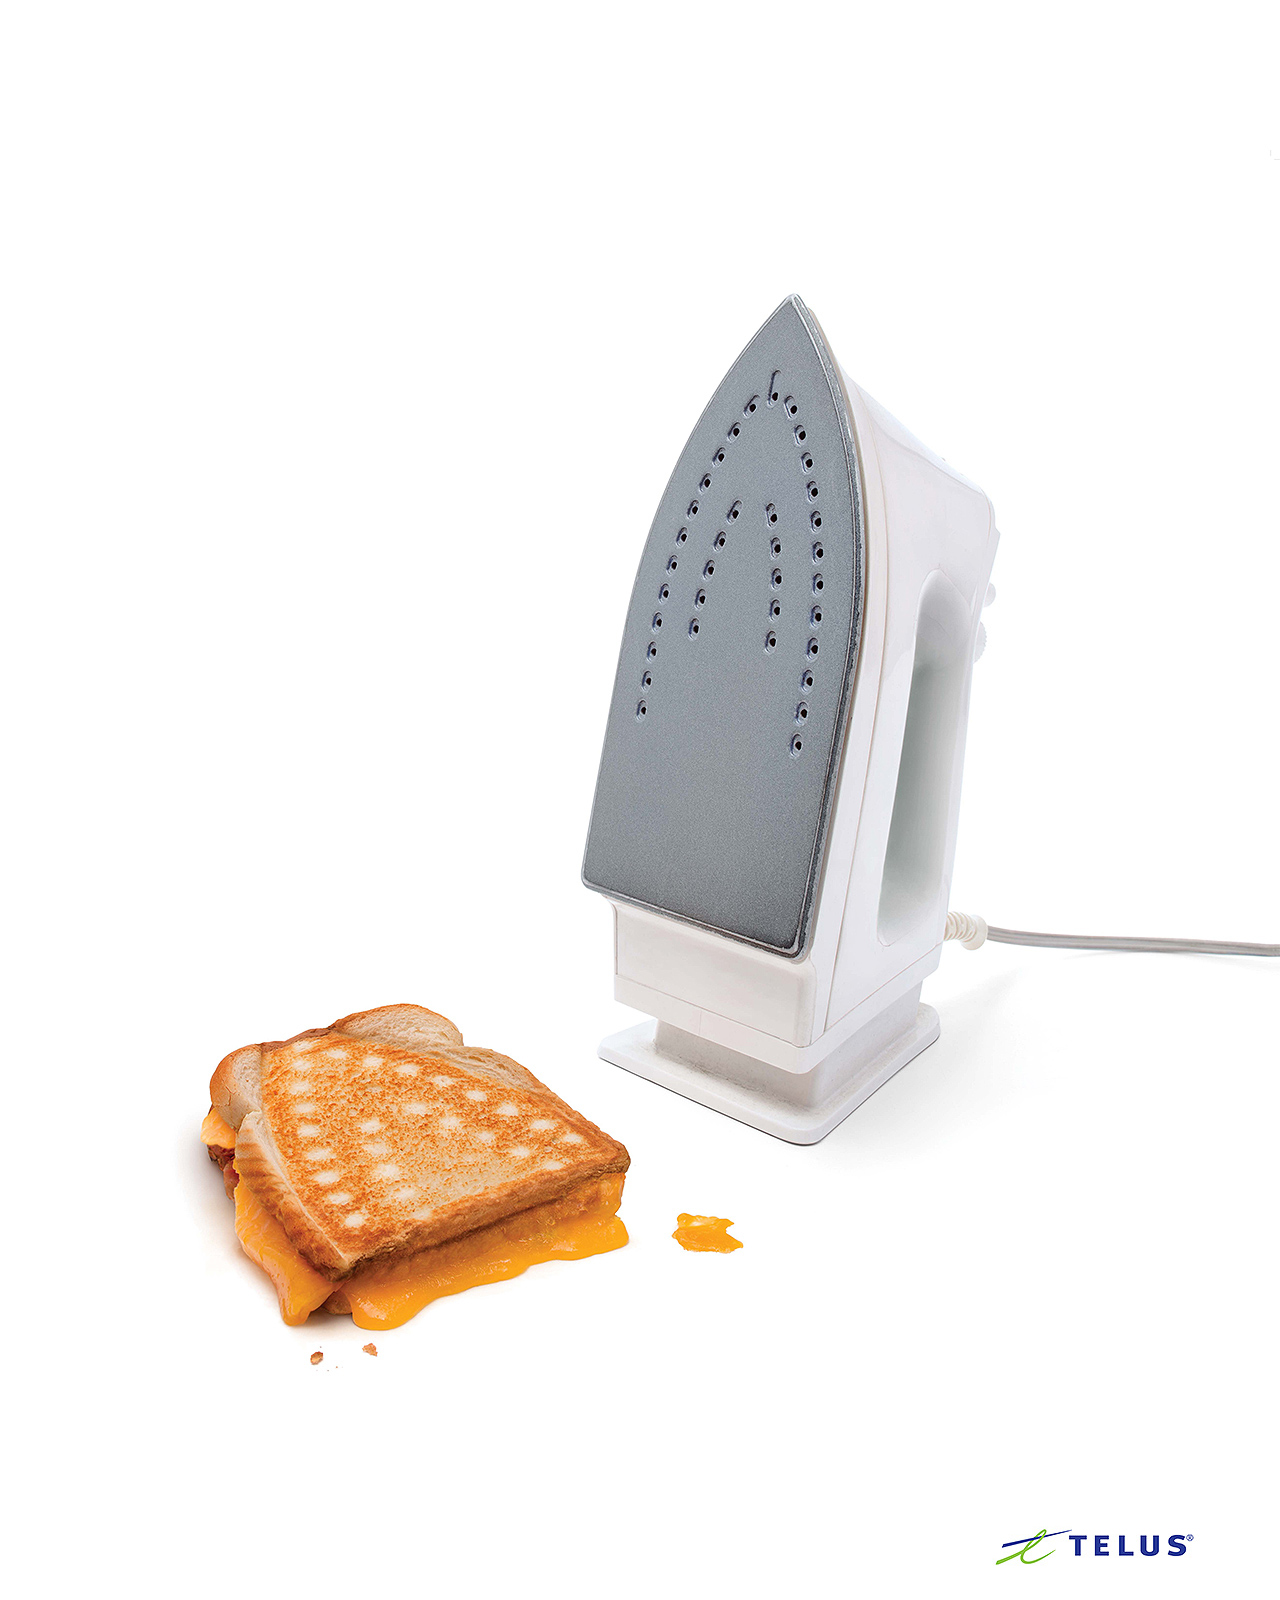 Telus - Grilled Cheese - Back To School Campaign - Advertising and Commercial Photography